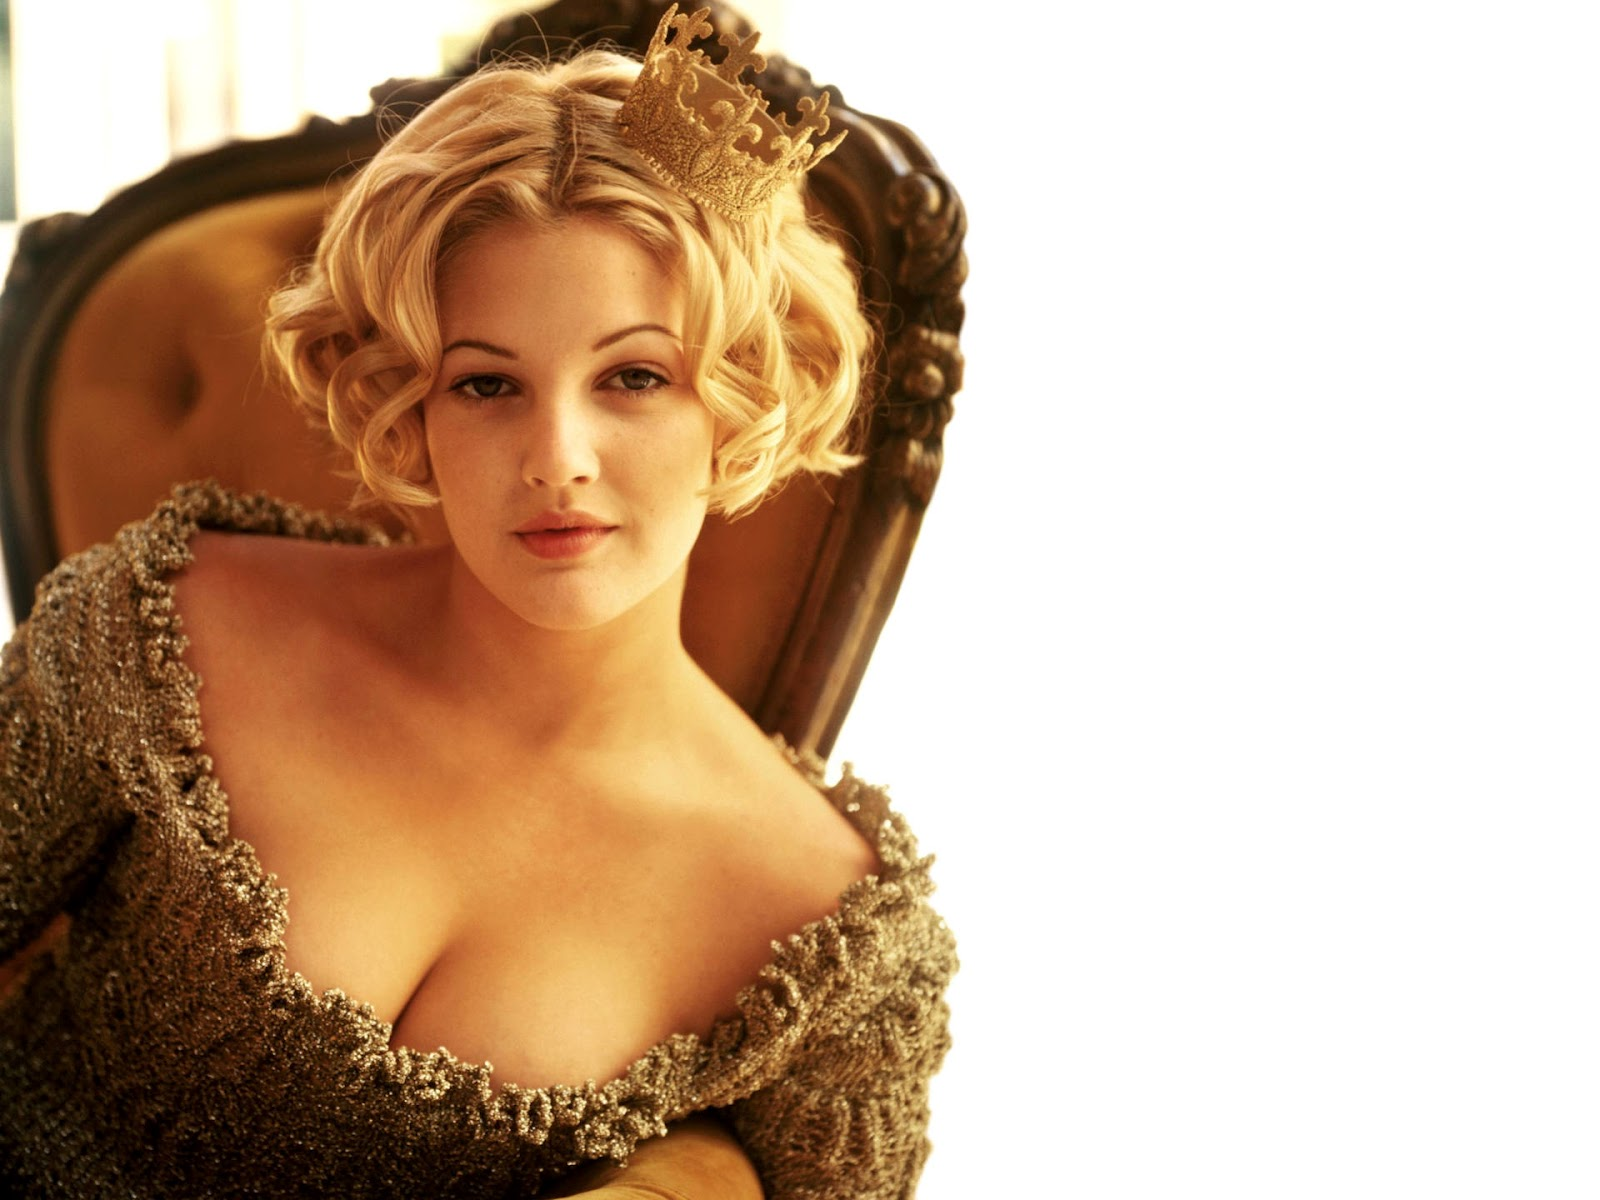 Drew Barrymore Sexy Beauty